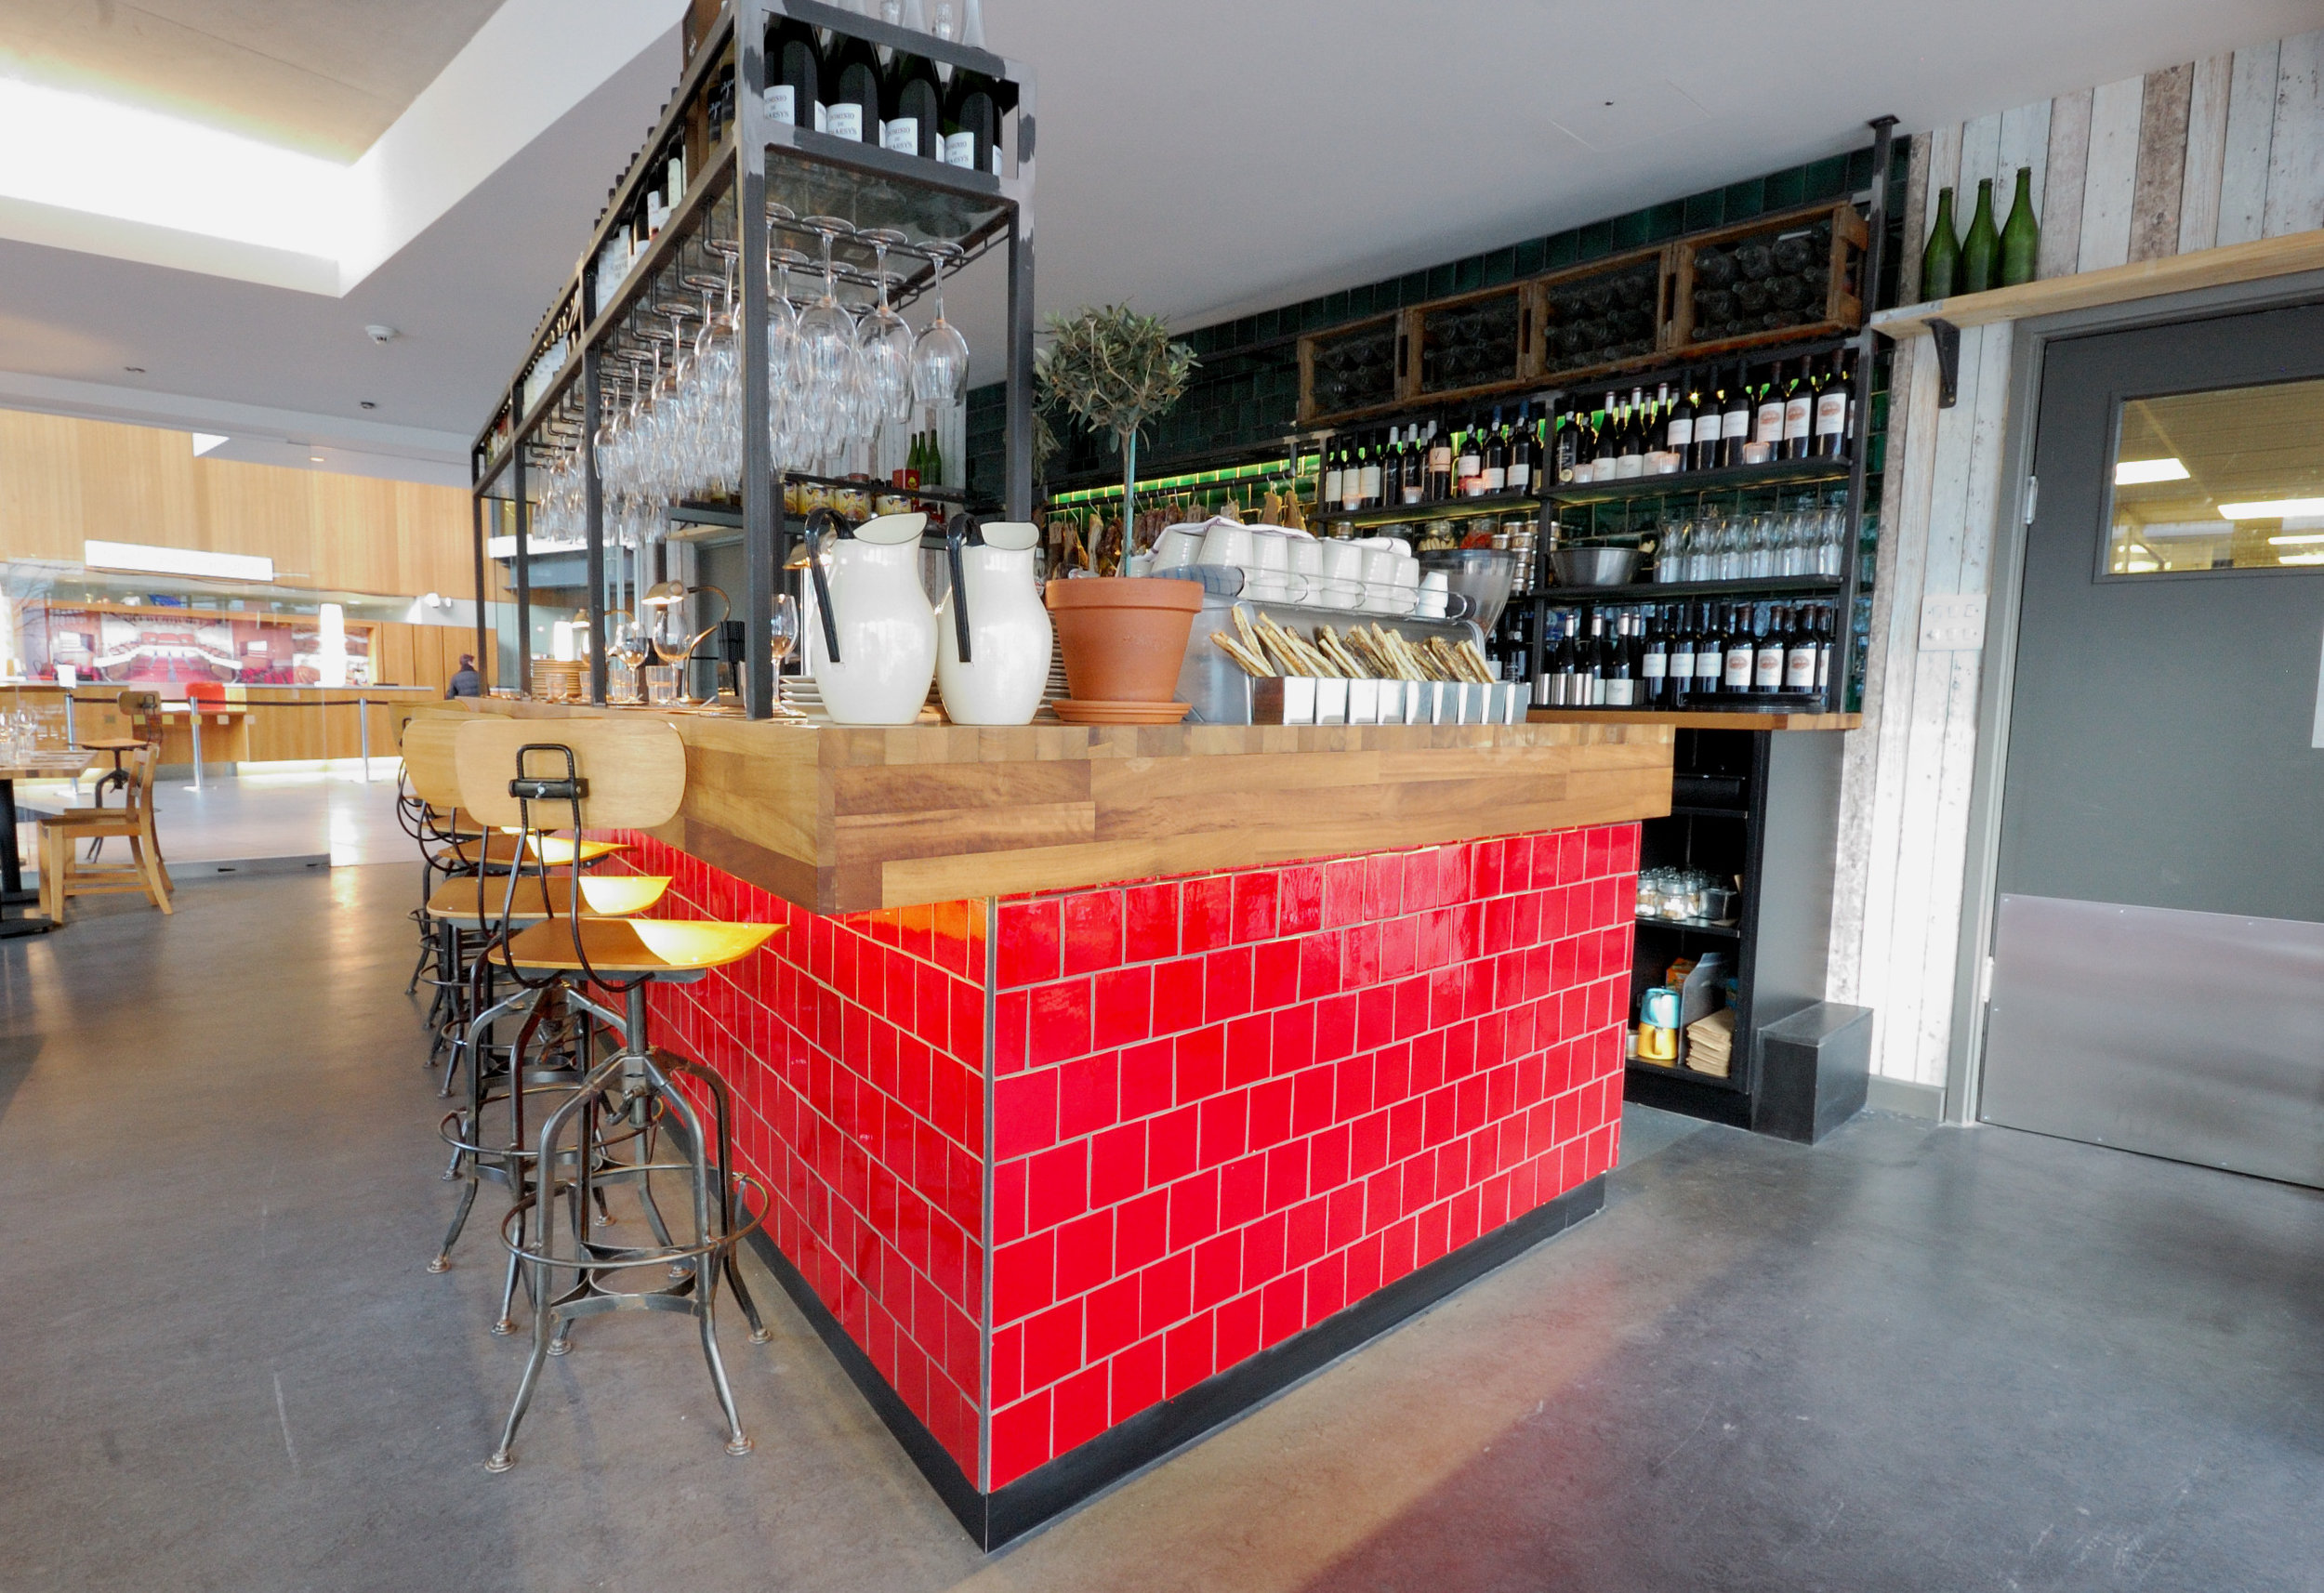 Beerd, Colston Hall, Bristol - Handmade 'zellige' style tiles supplied to this bar within Bristol's famous Colston Hall.